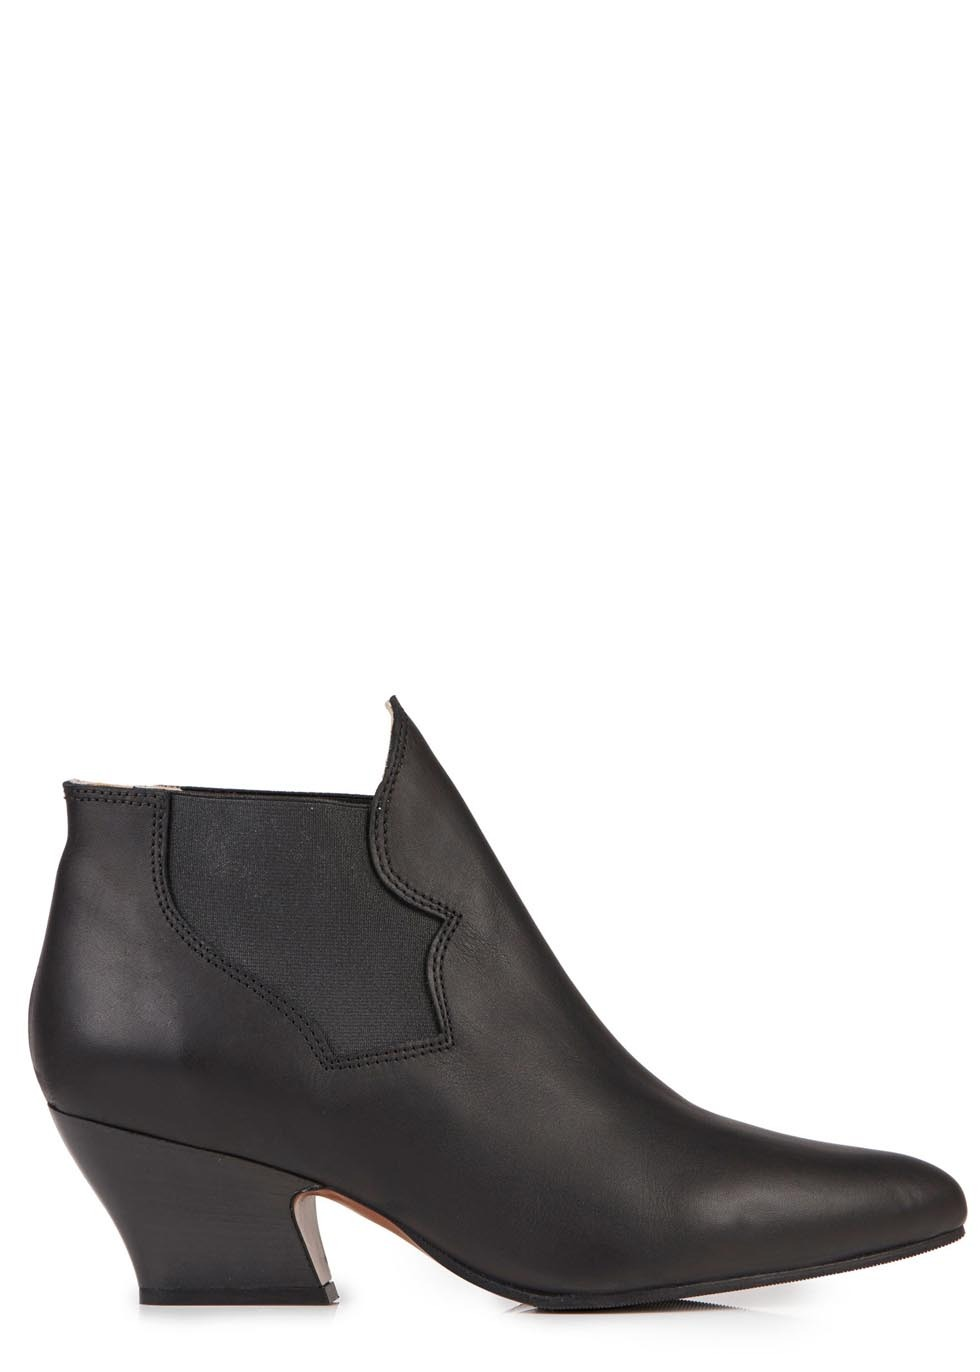 Alma Black Leather Ankle Boots - predominant colour: black; occasions: casual, creative work; material: leather; heel height: mid; heel: standard; toe: pointed toe; boot length: ankle boot; style: standard; finish: plain; pattern: plain; season: s/s 2014